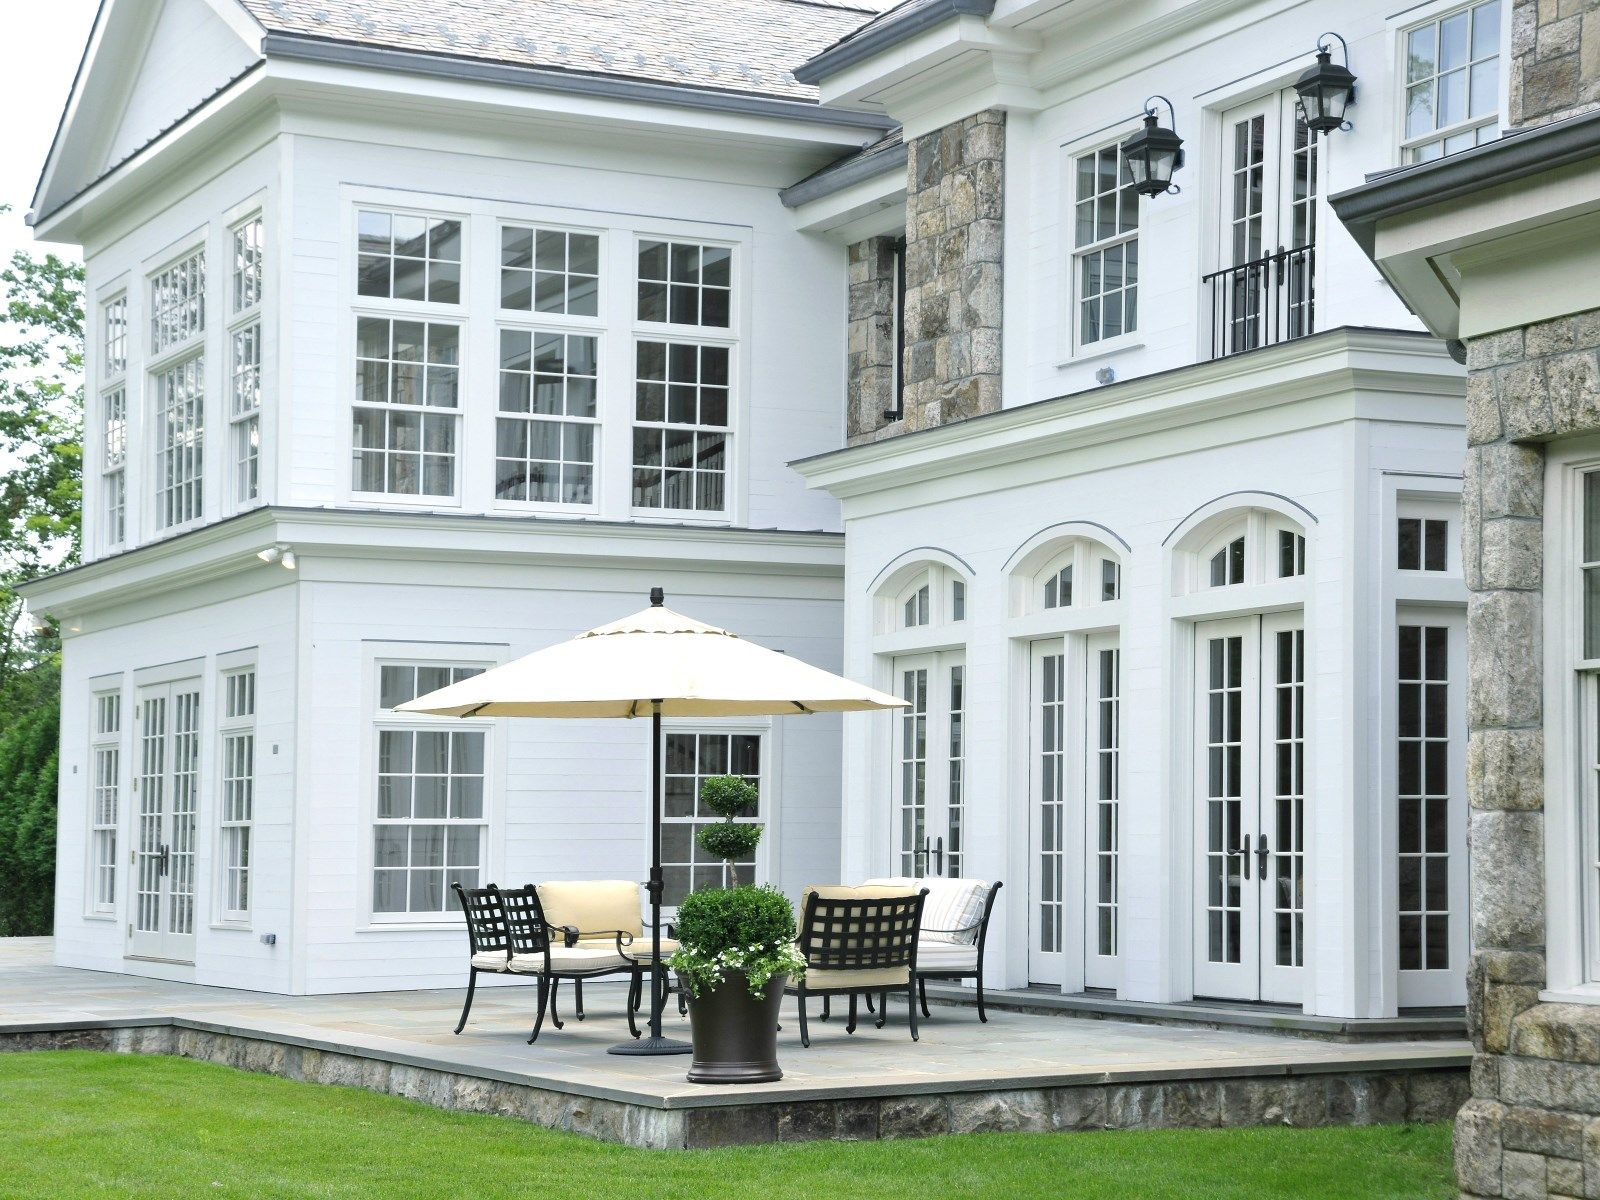 Magnificent Backcountry Estate, Greenwich CT Single Family Home   Greenwich  Real Estate